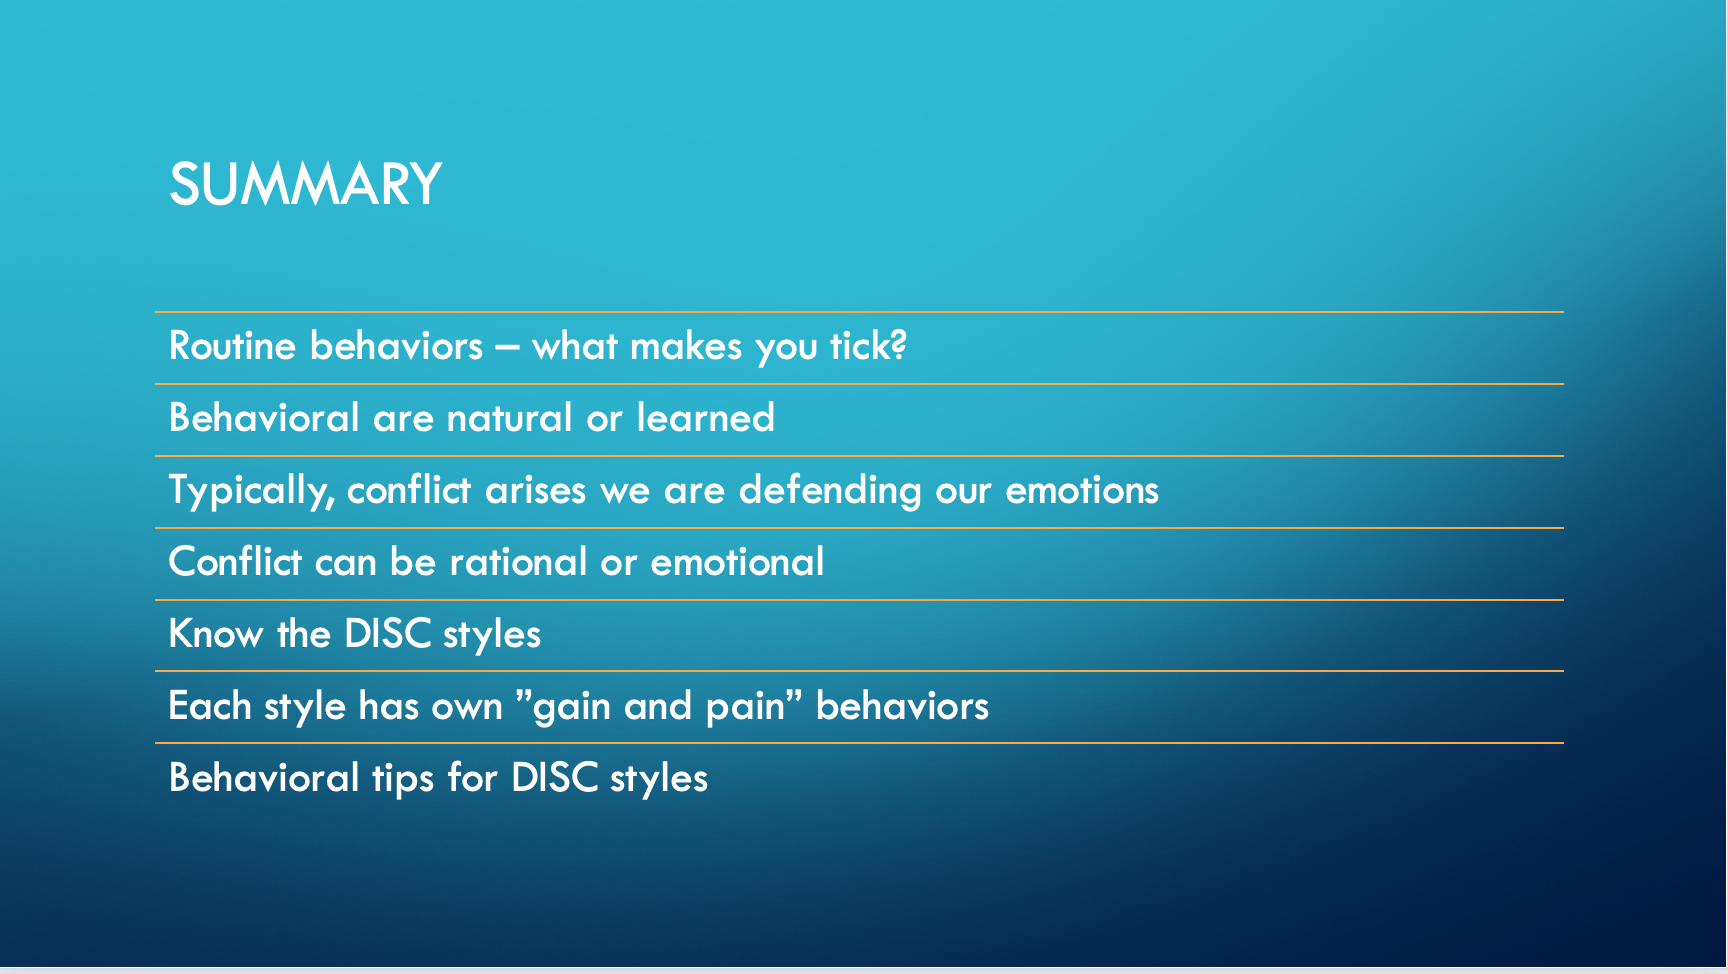 Managing Conflict Overview Summary